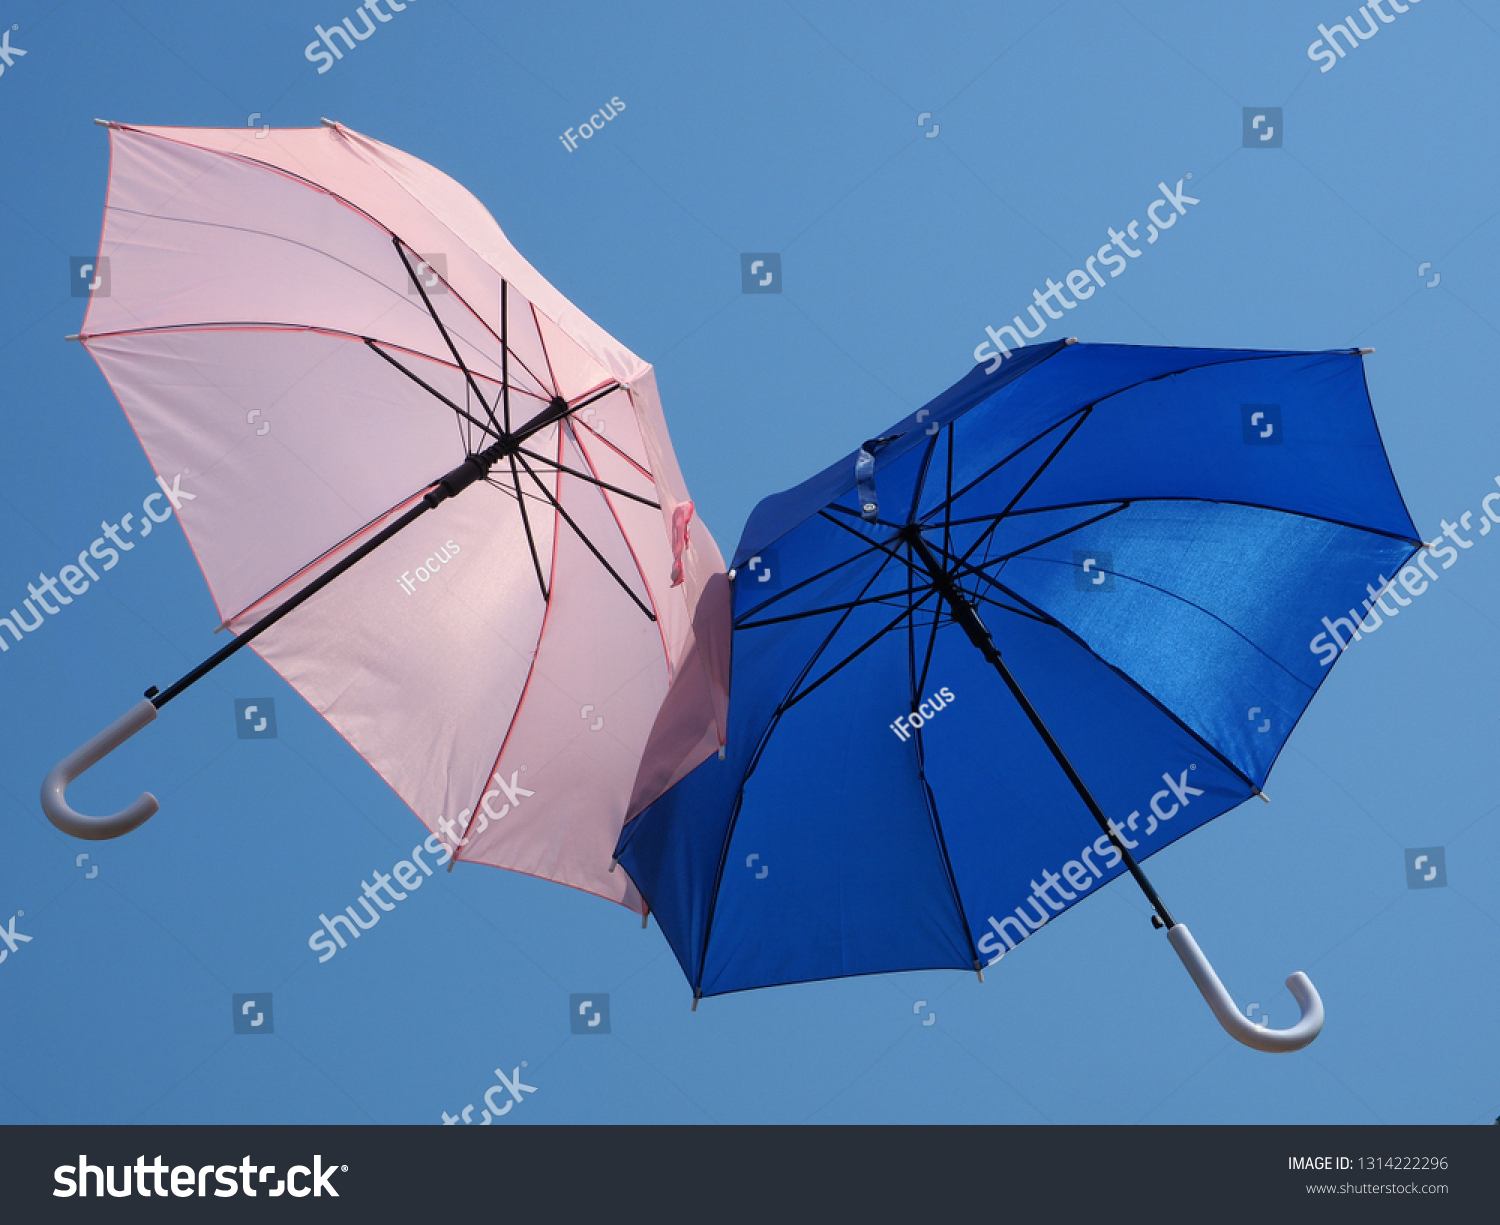 Pink and blue umbrellas fly in blue sky